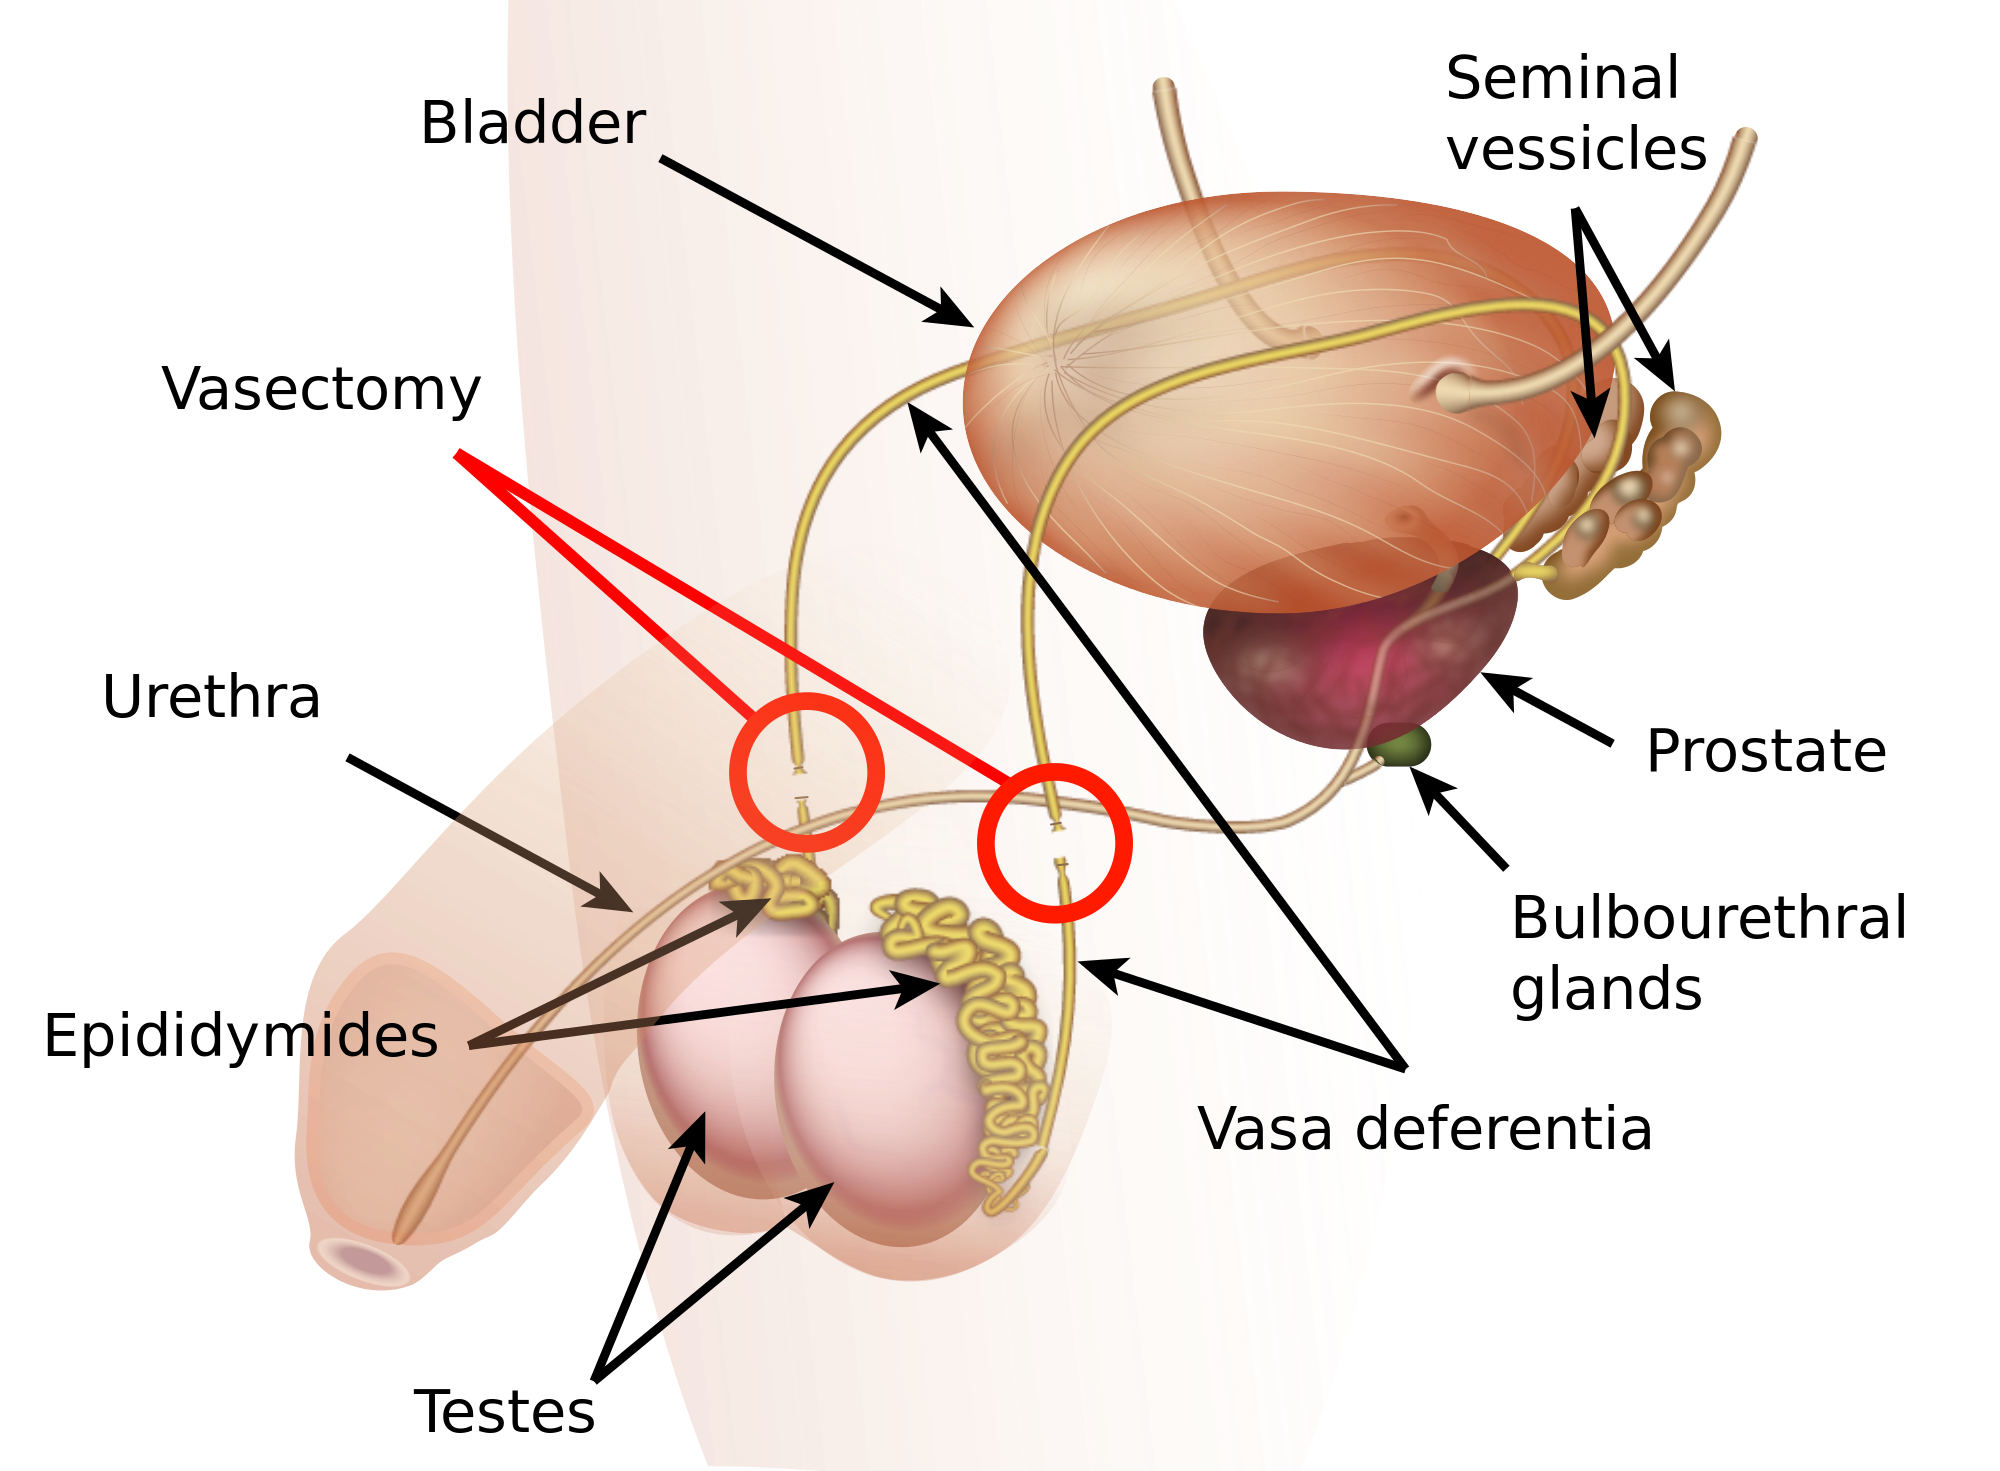 epididymitis a real pain essay Testicular/scrotal disorders spermatocele is a term used to describe a cyst which forms on the epididymis (such as pain.